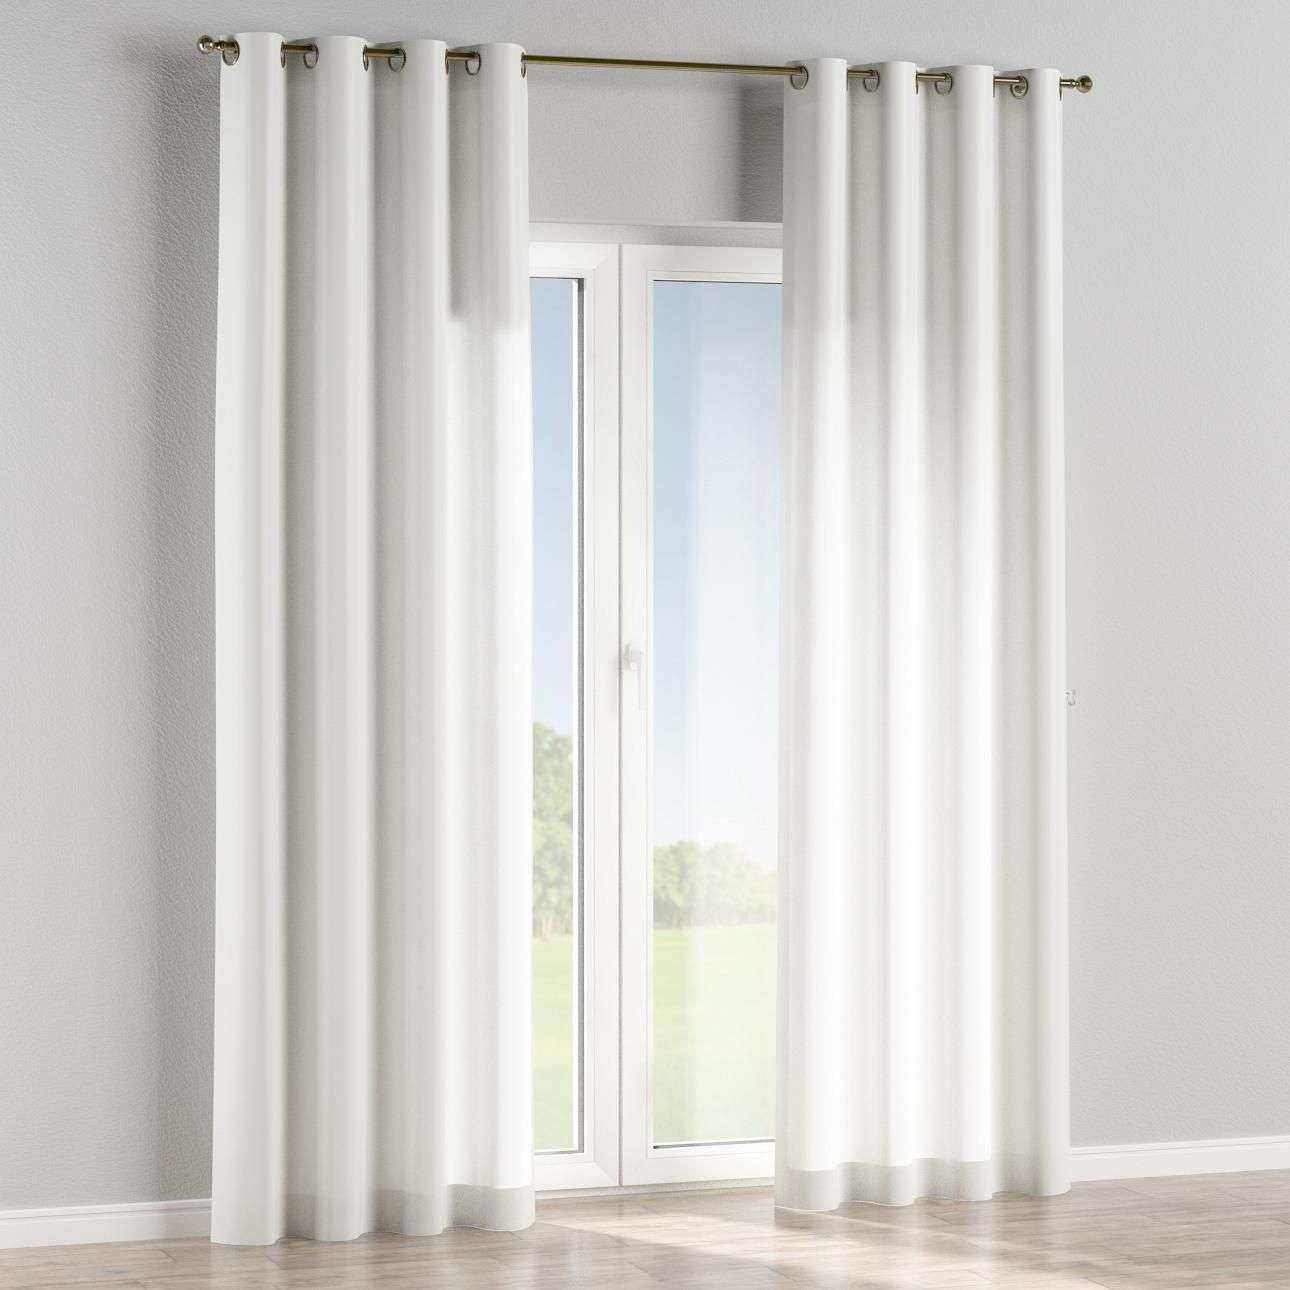 Eyelet lined curtains in collection Bristol, fabric: 125-09